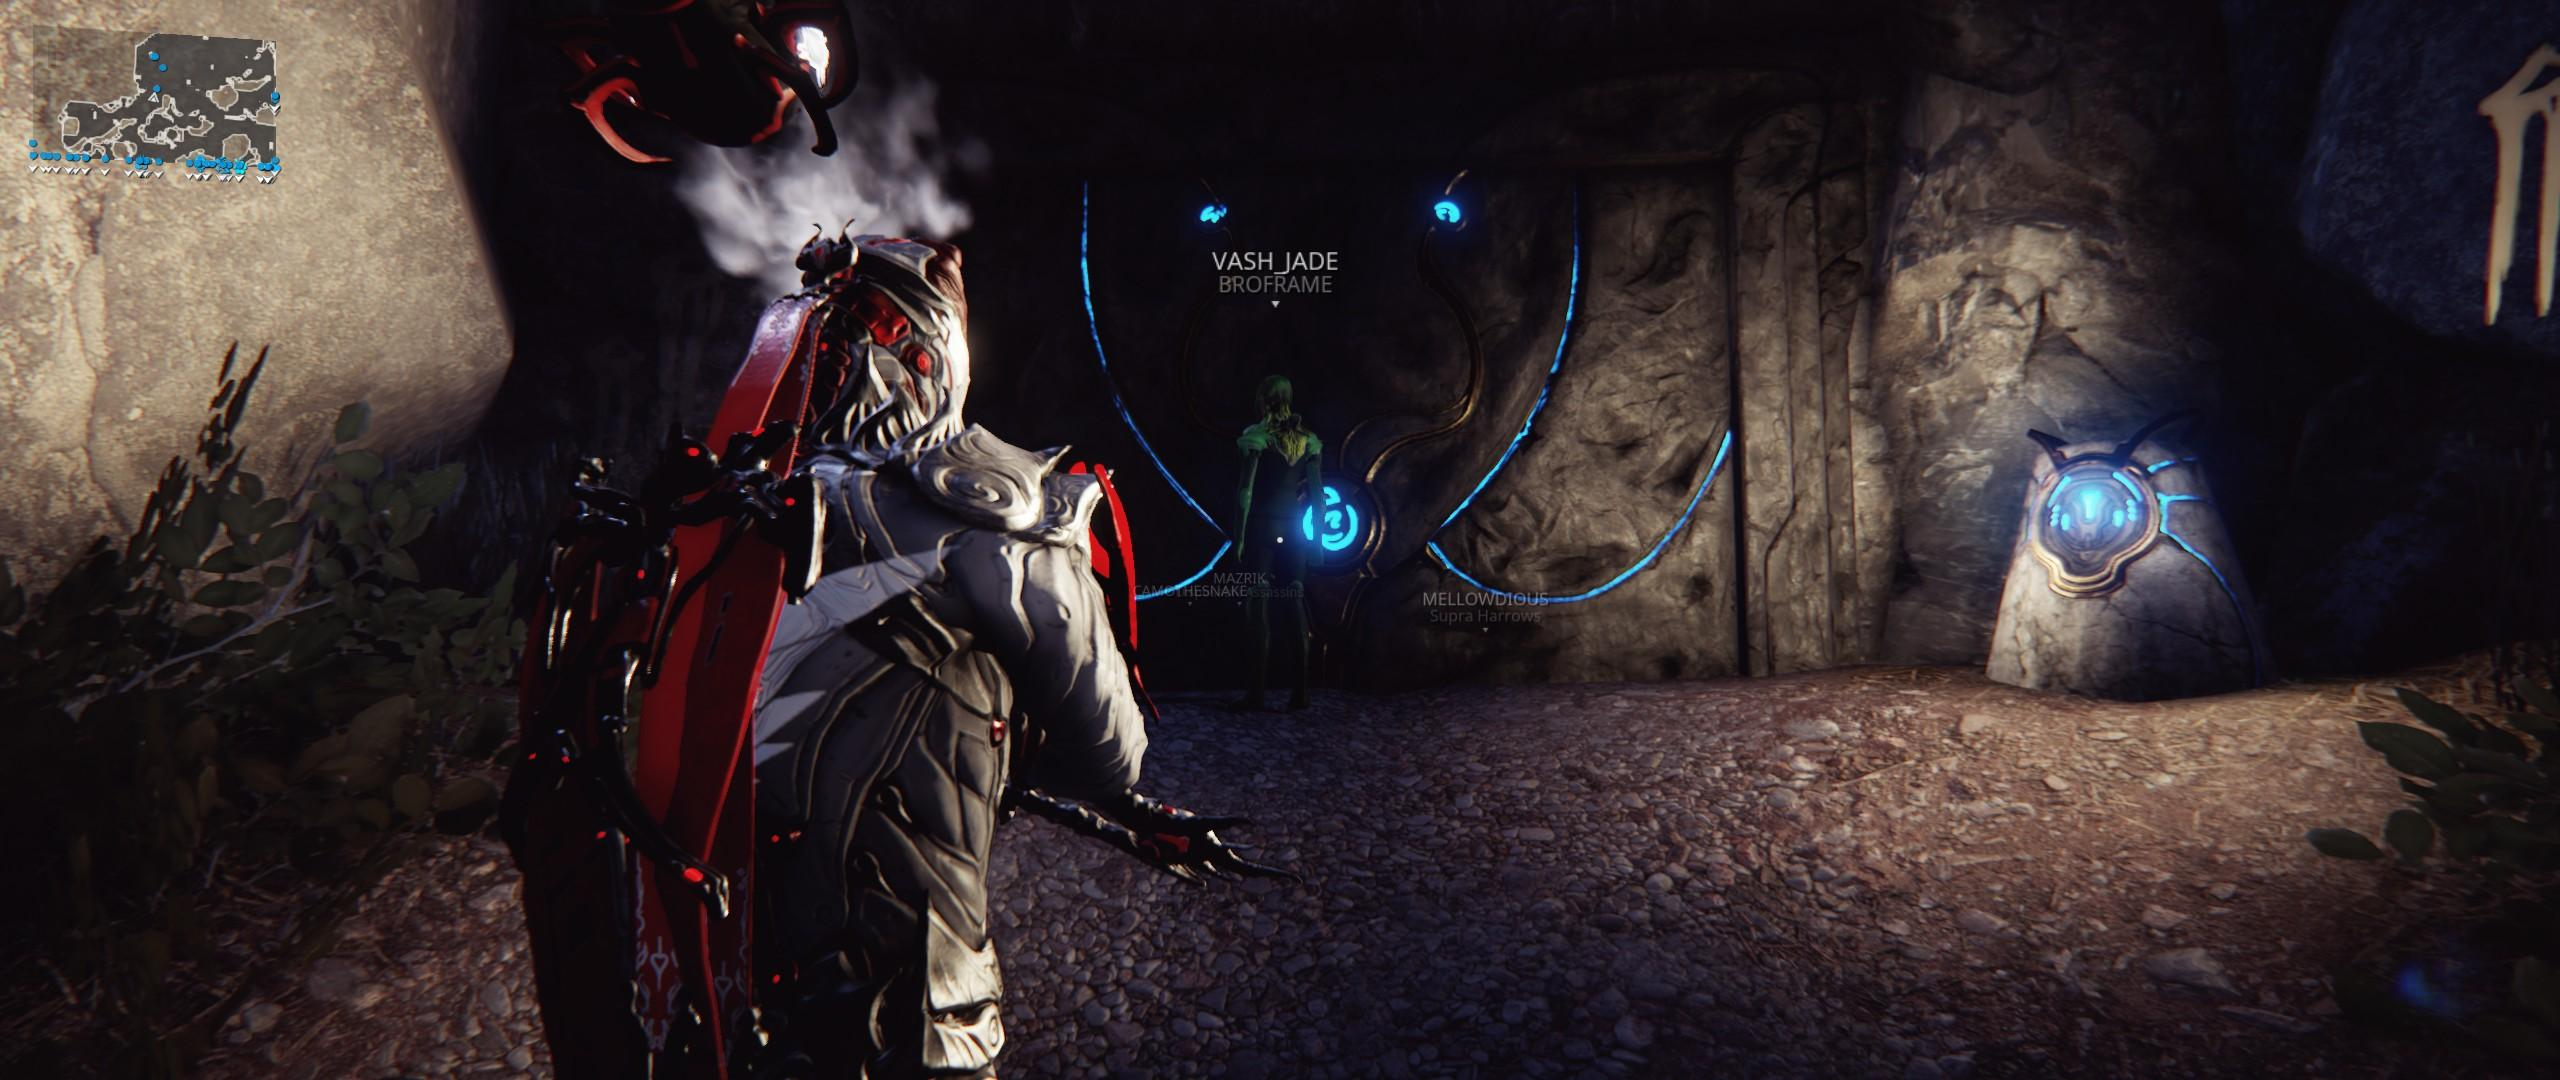 Warframe - How to Get Brand New Operator Armor and Weapons